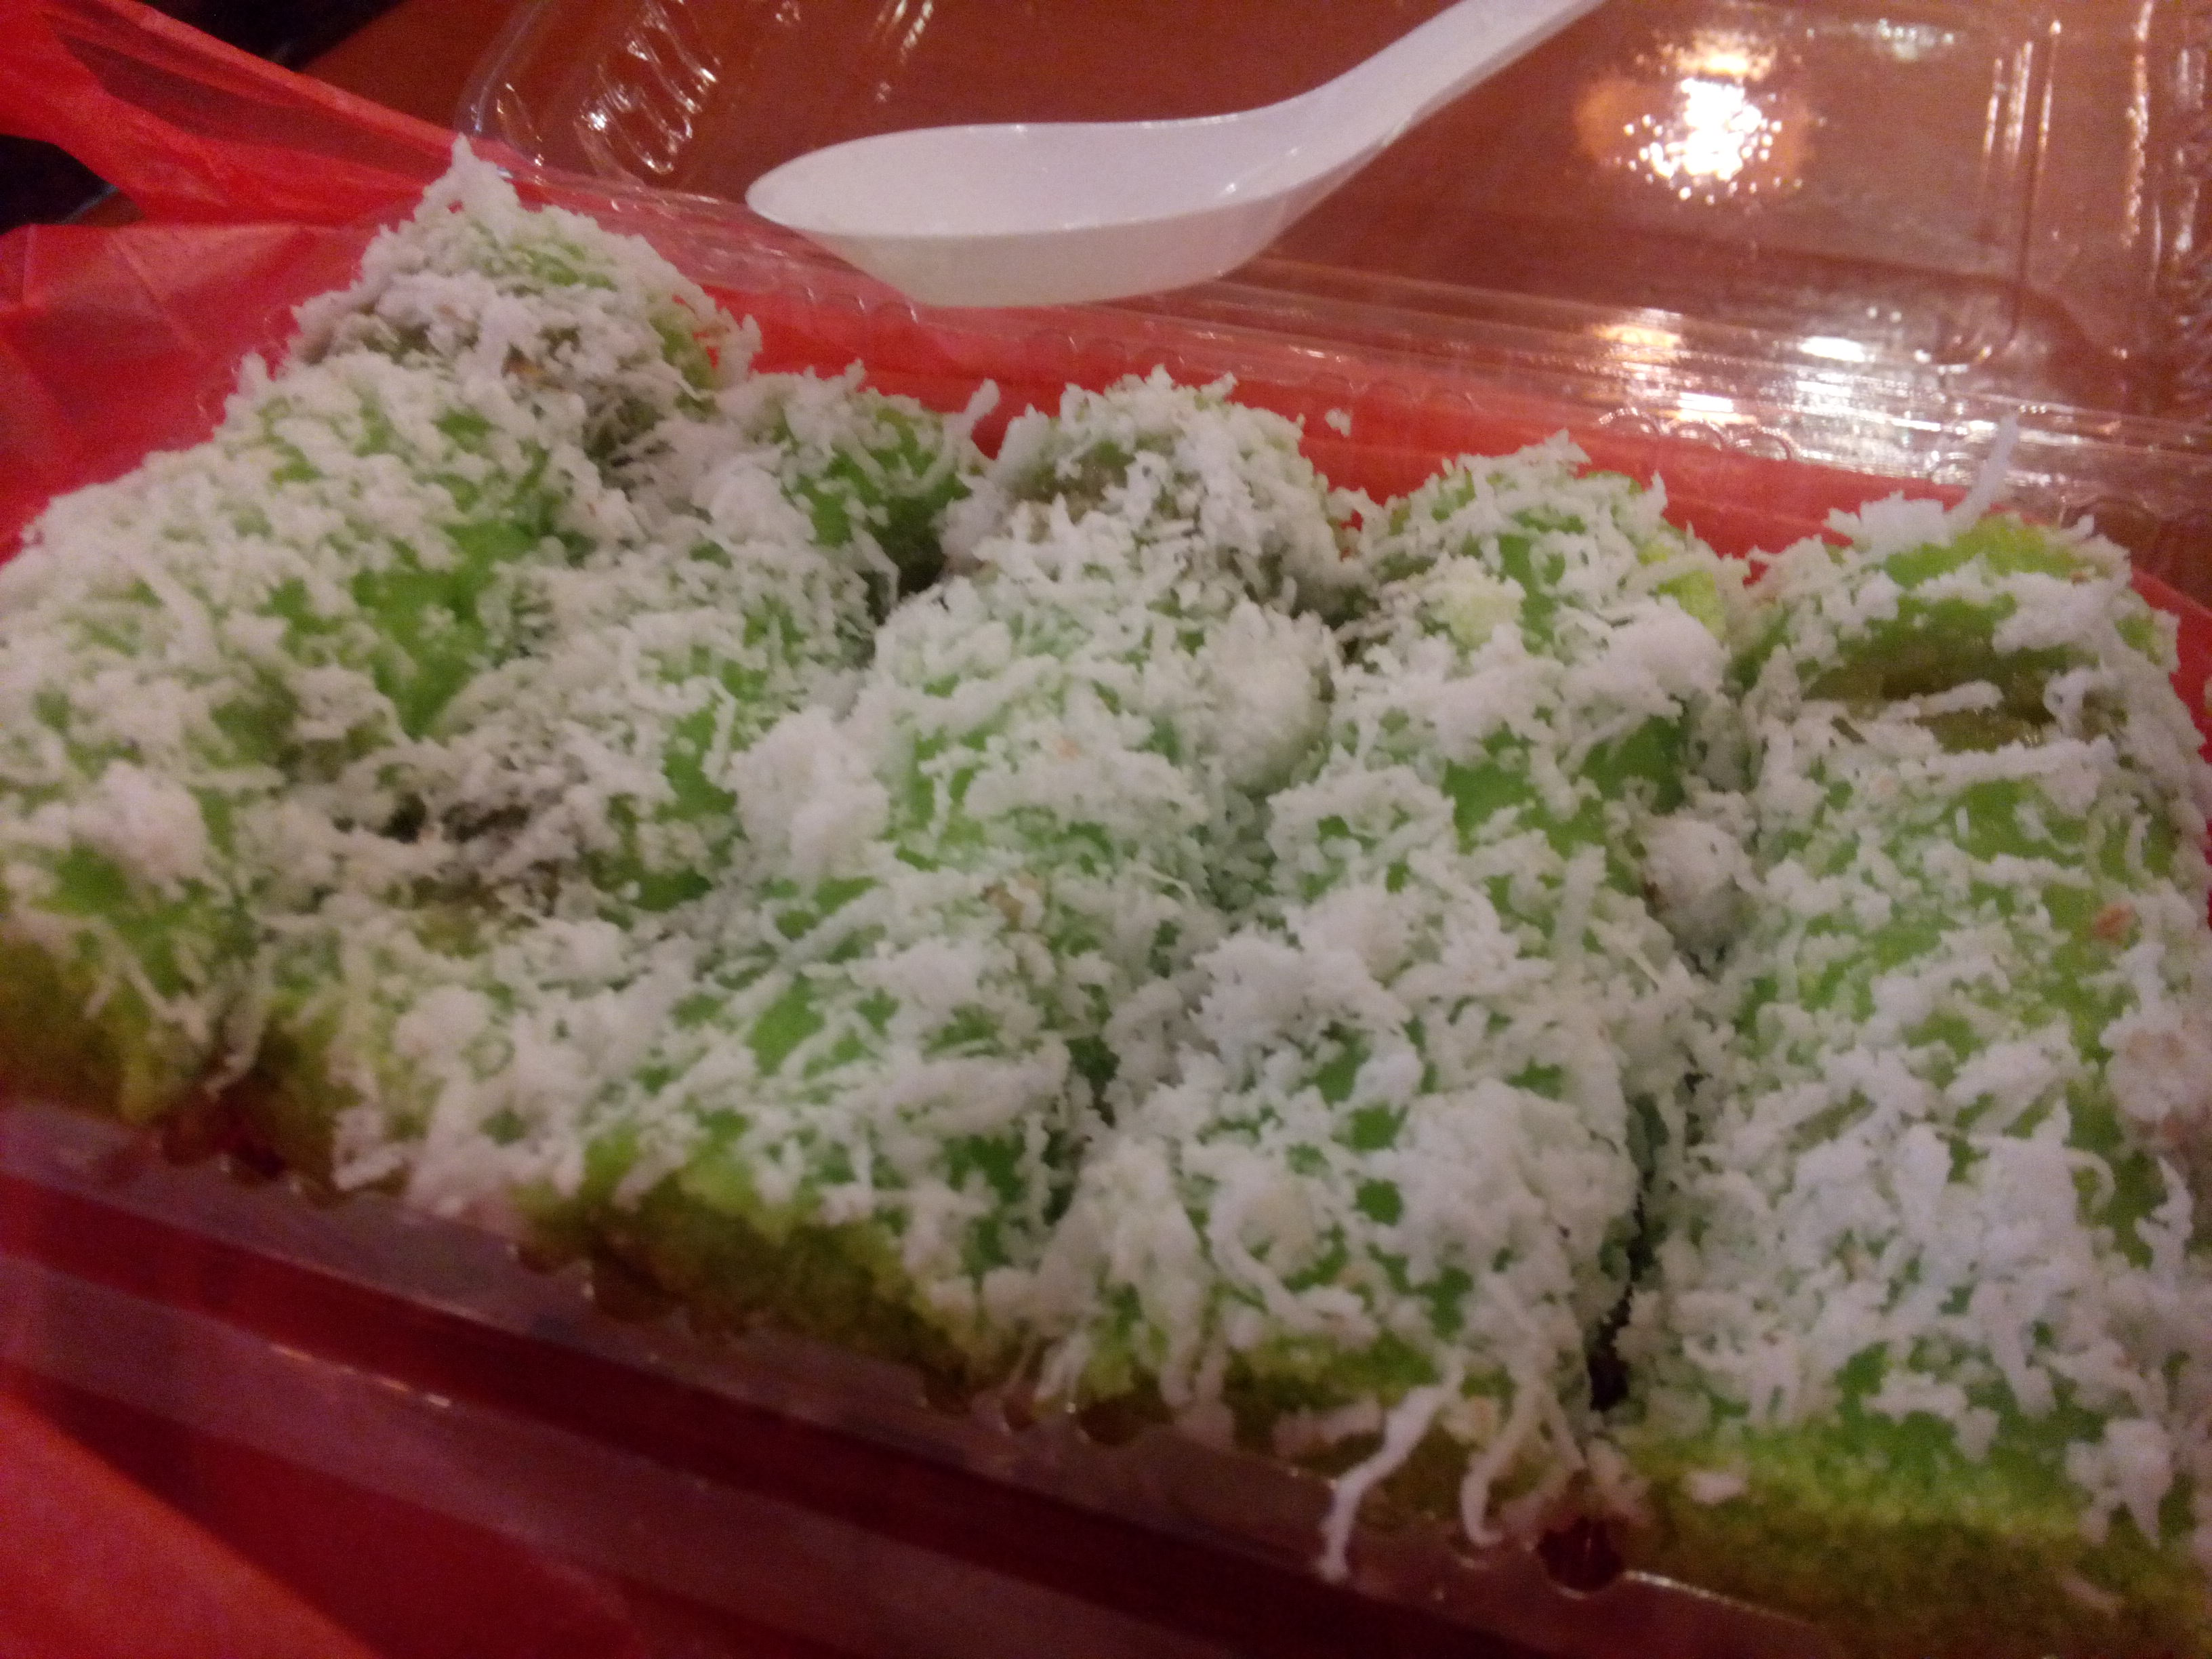 Green coconut covered spongy things in a plastic container